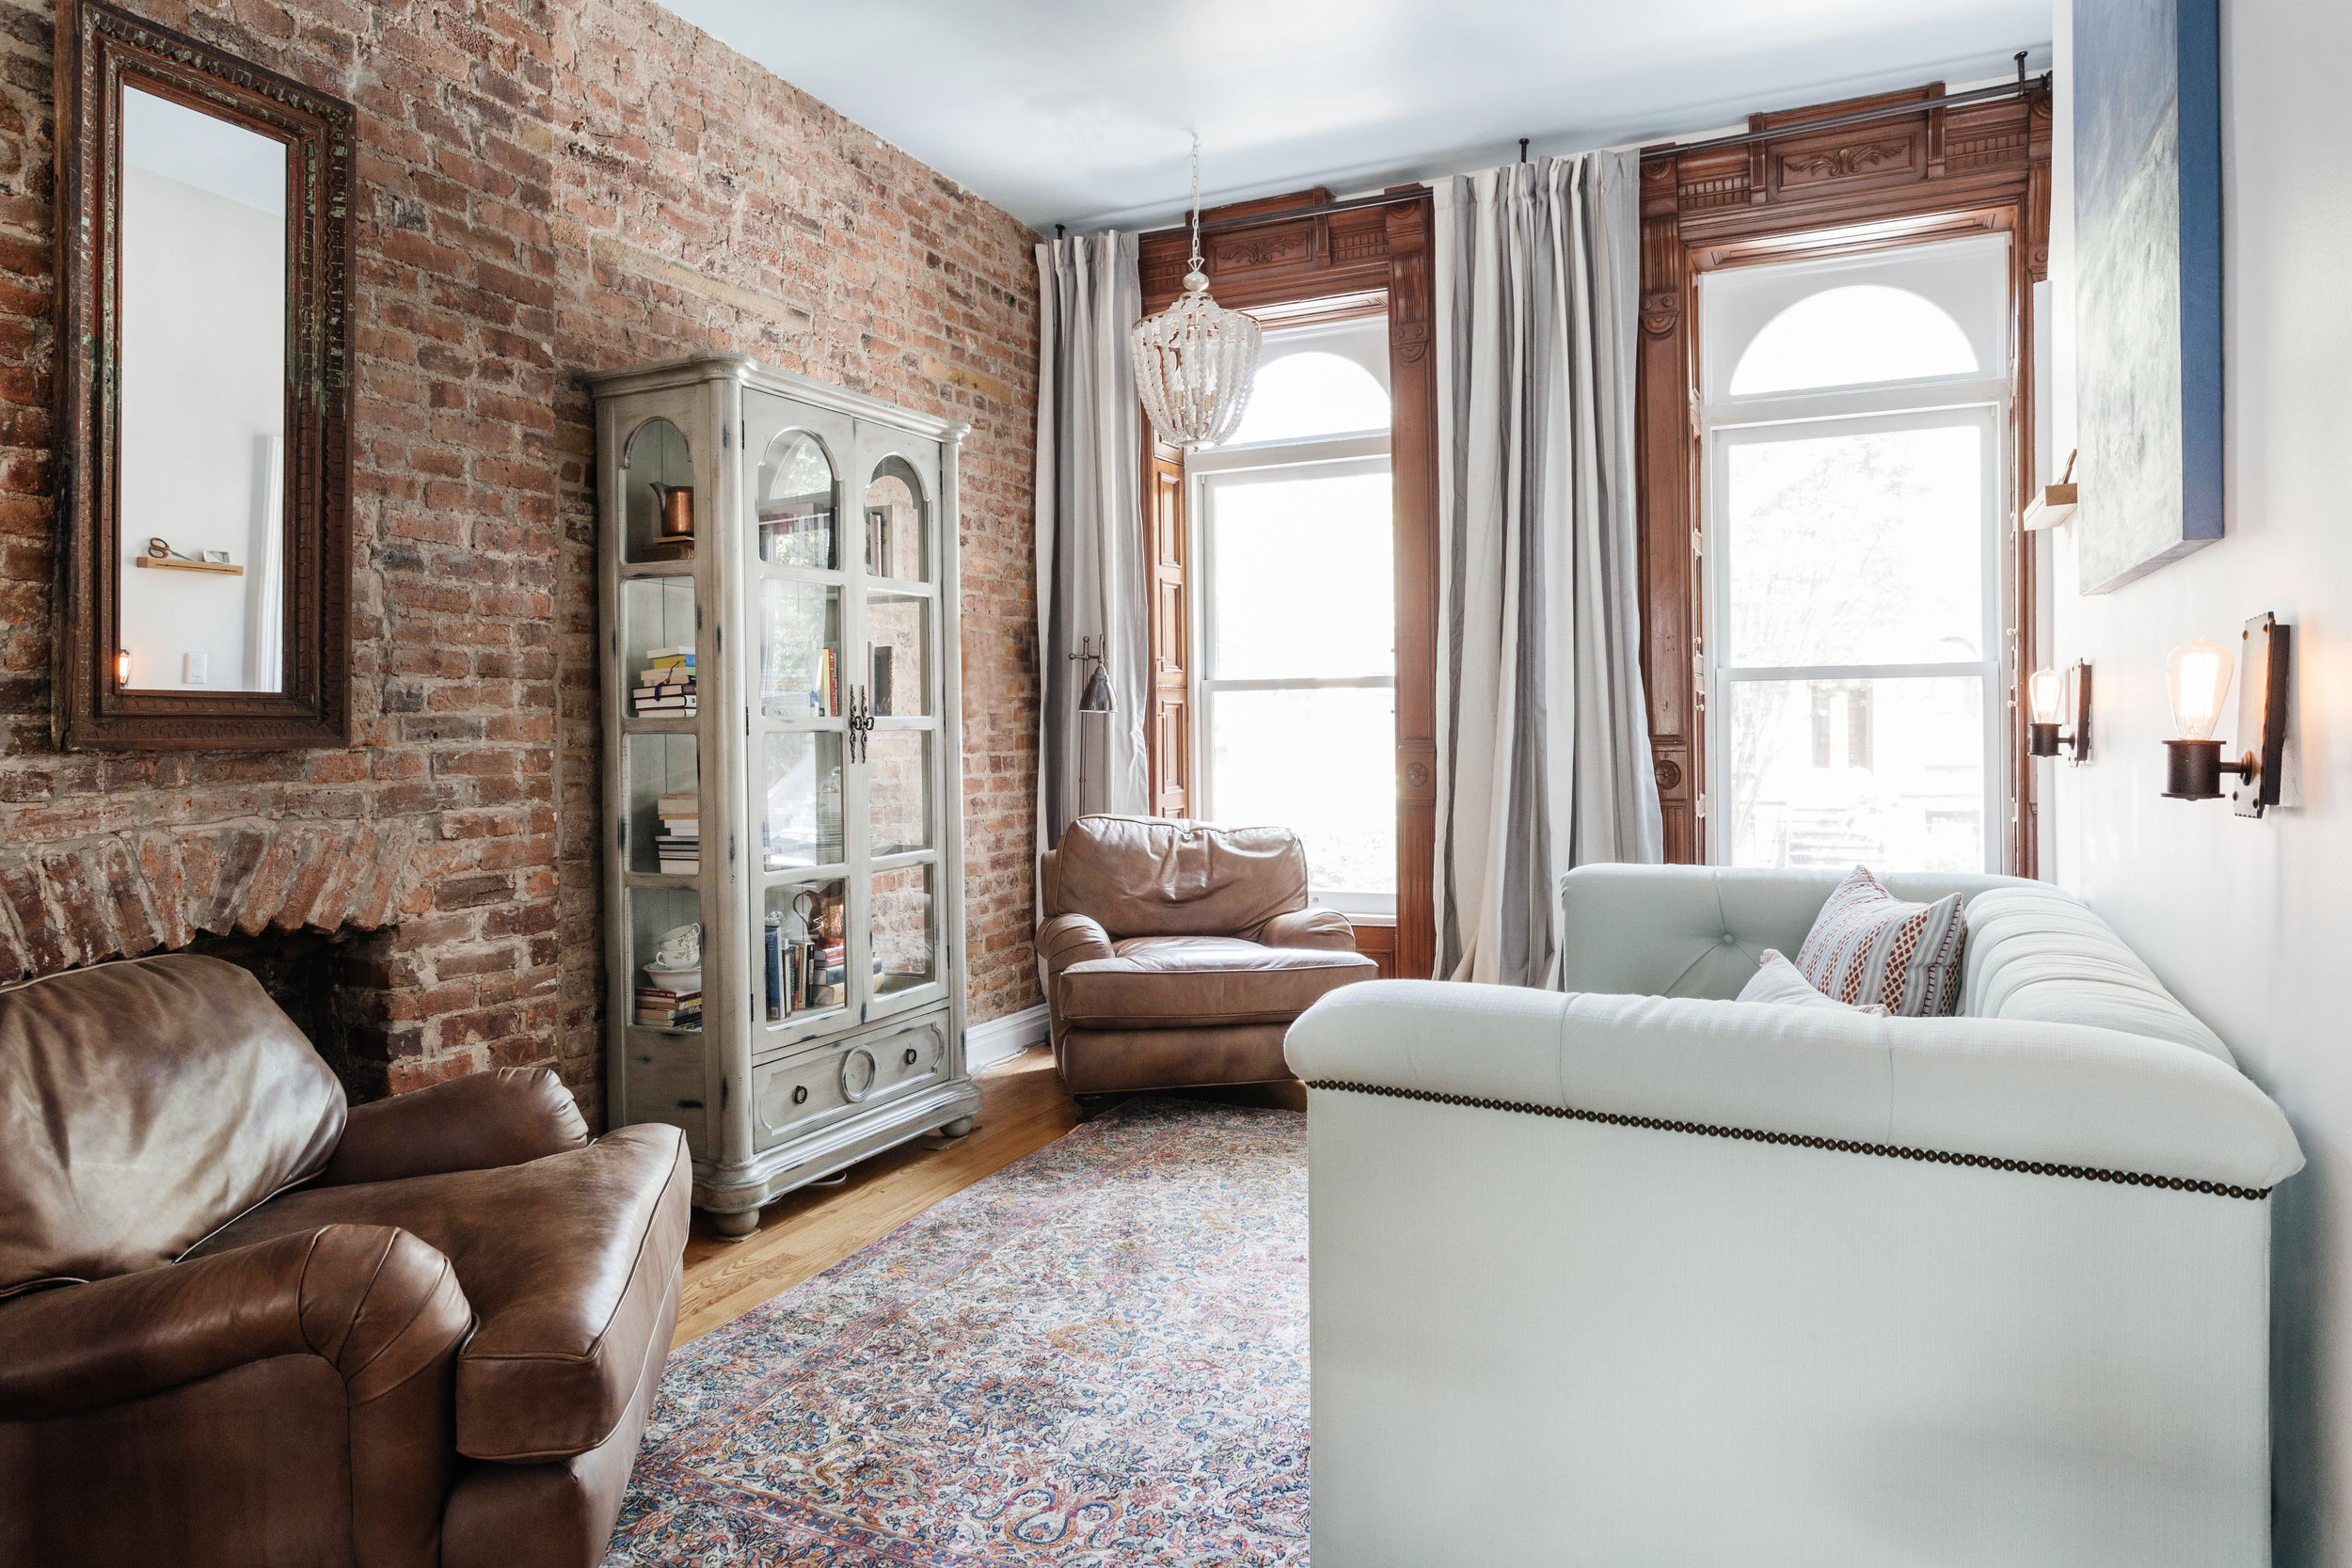 Bright living room space with luxurious brown leather chairs and original wooden casement windows